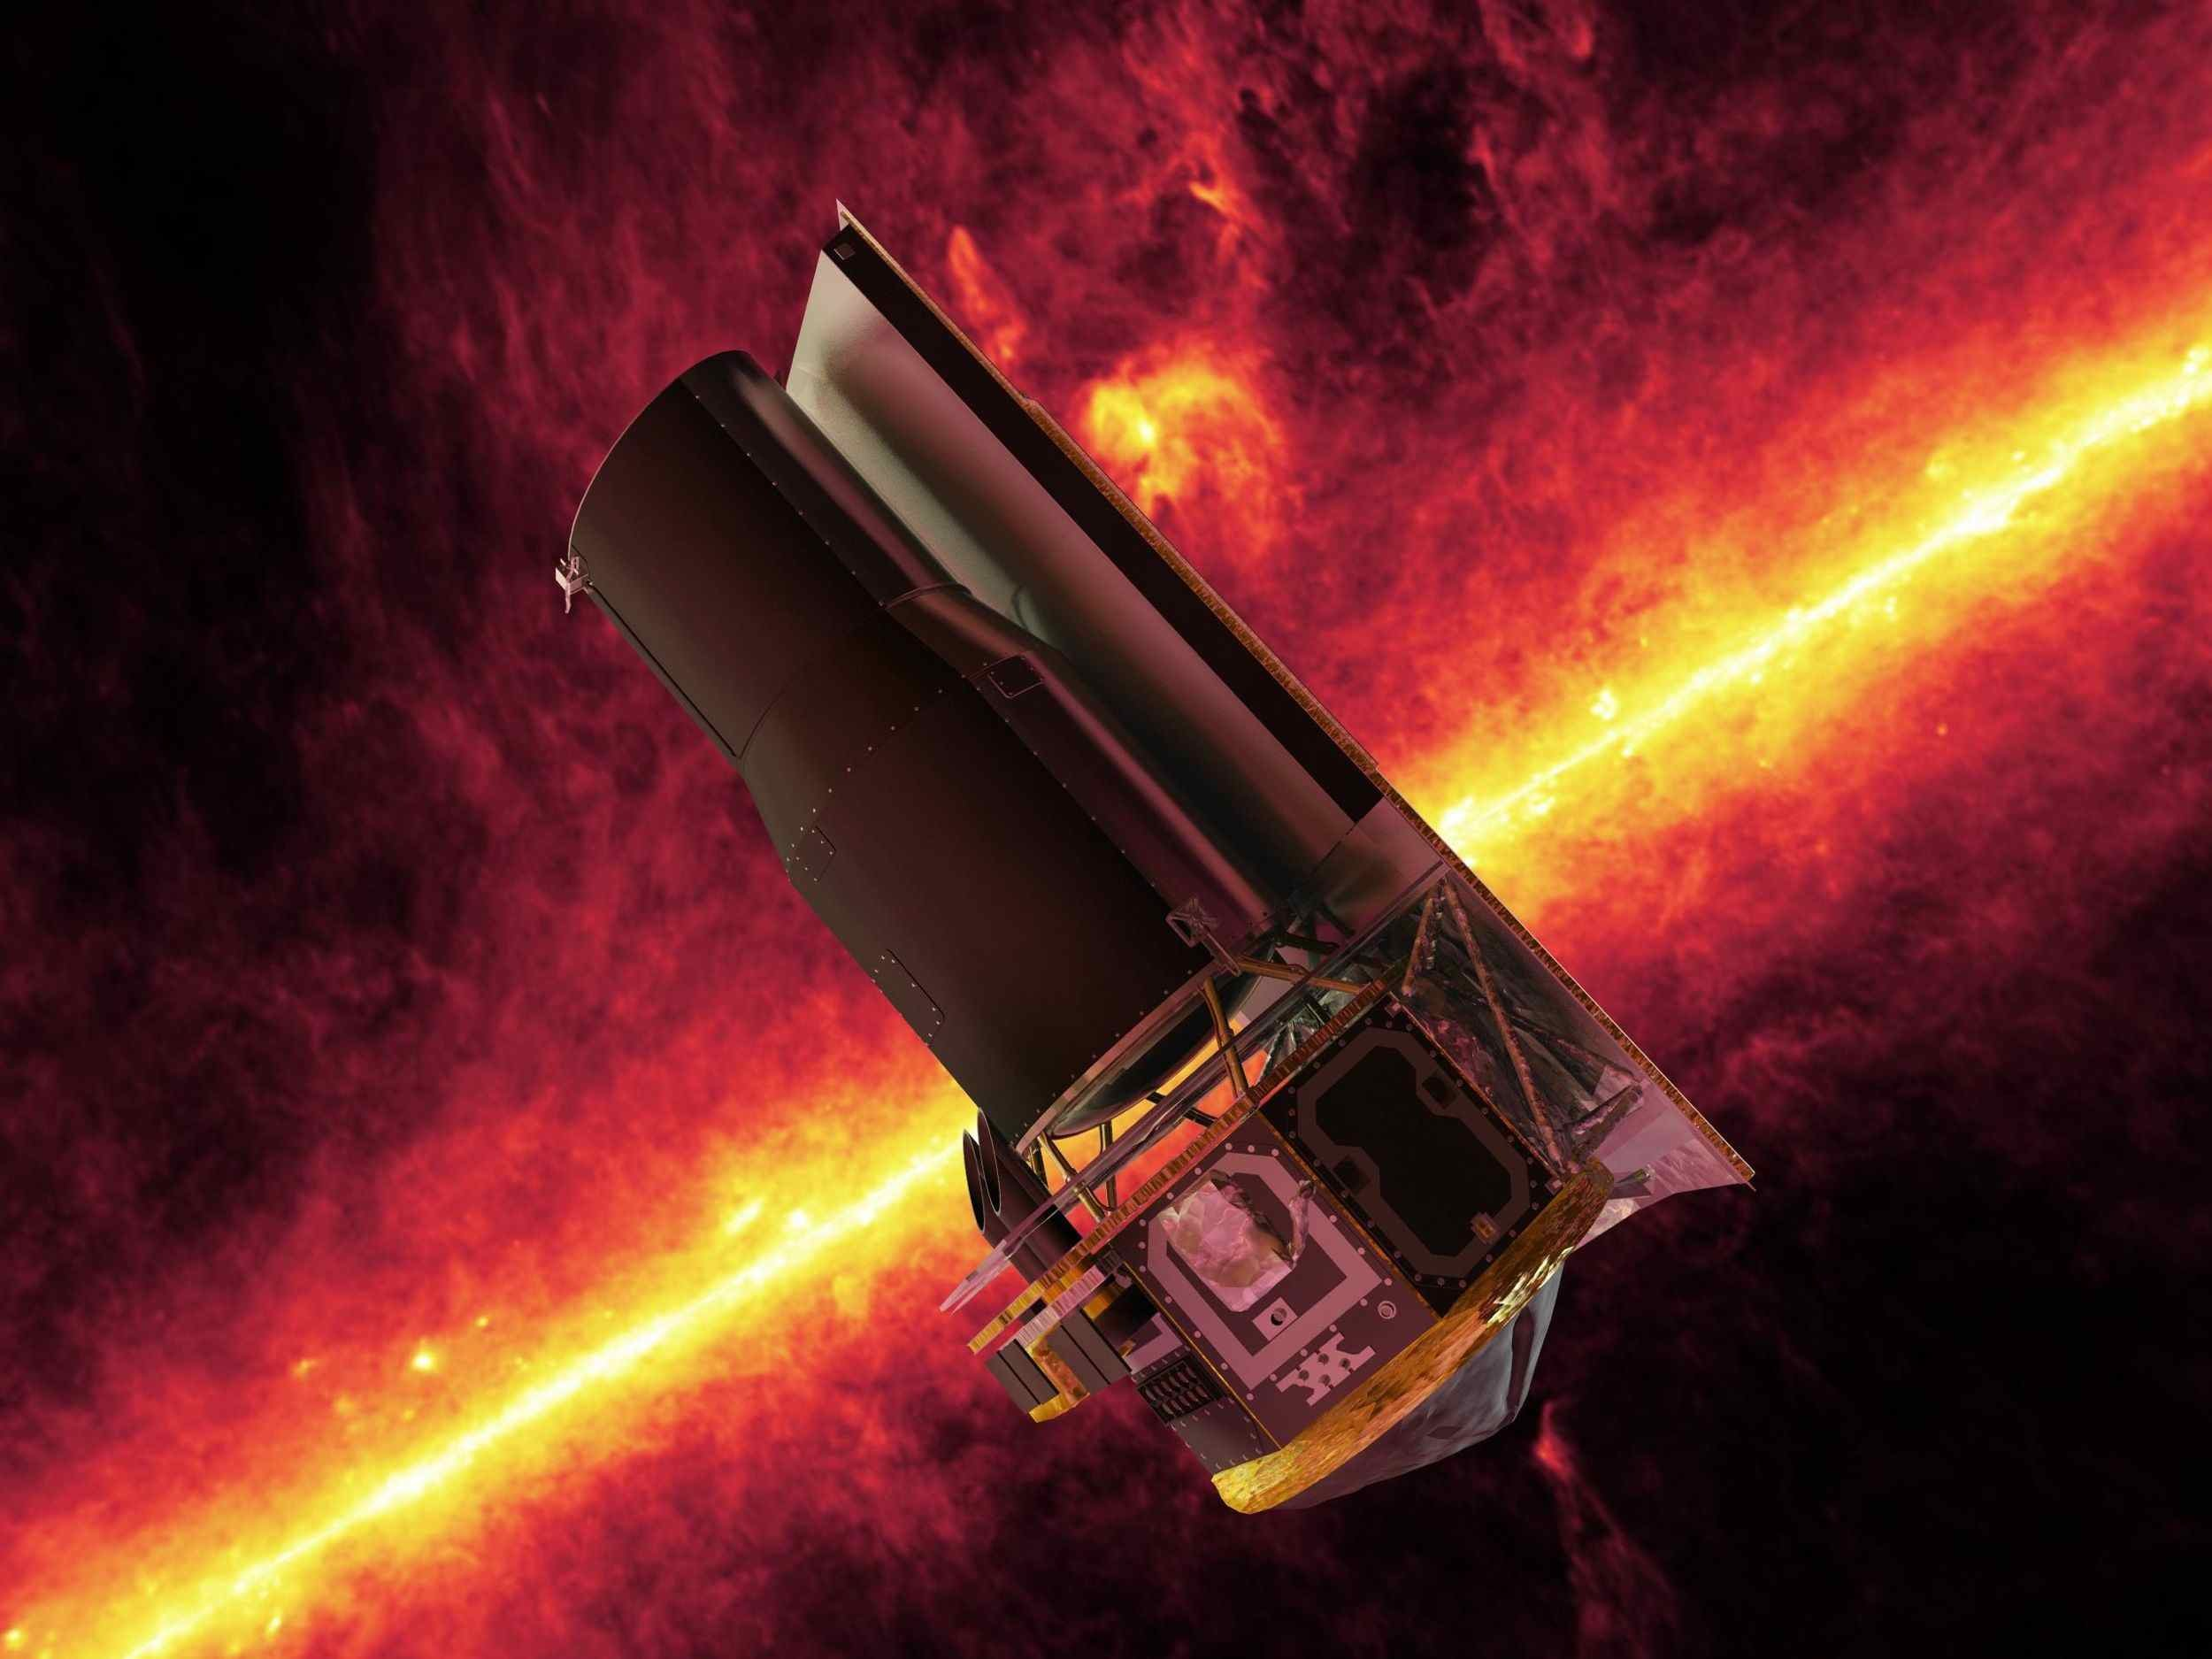 spacecraft in space - photo #41